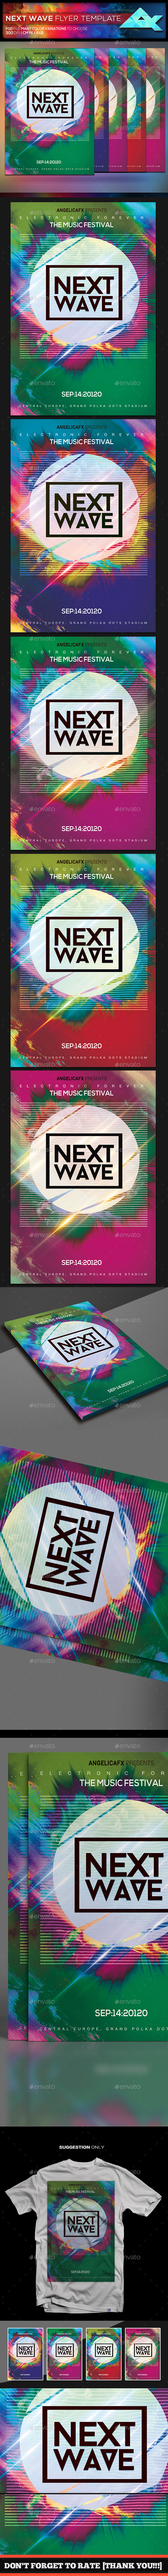 Next Wave Flyer Template - Events Flyers